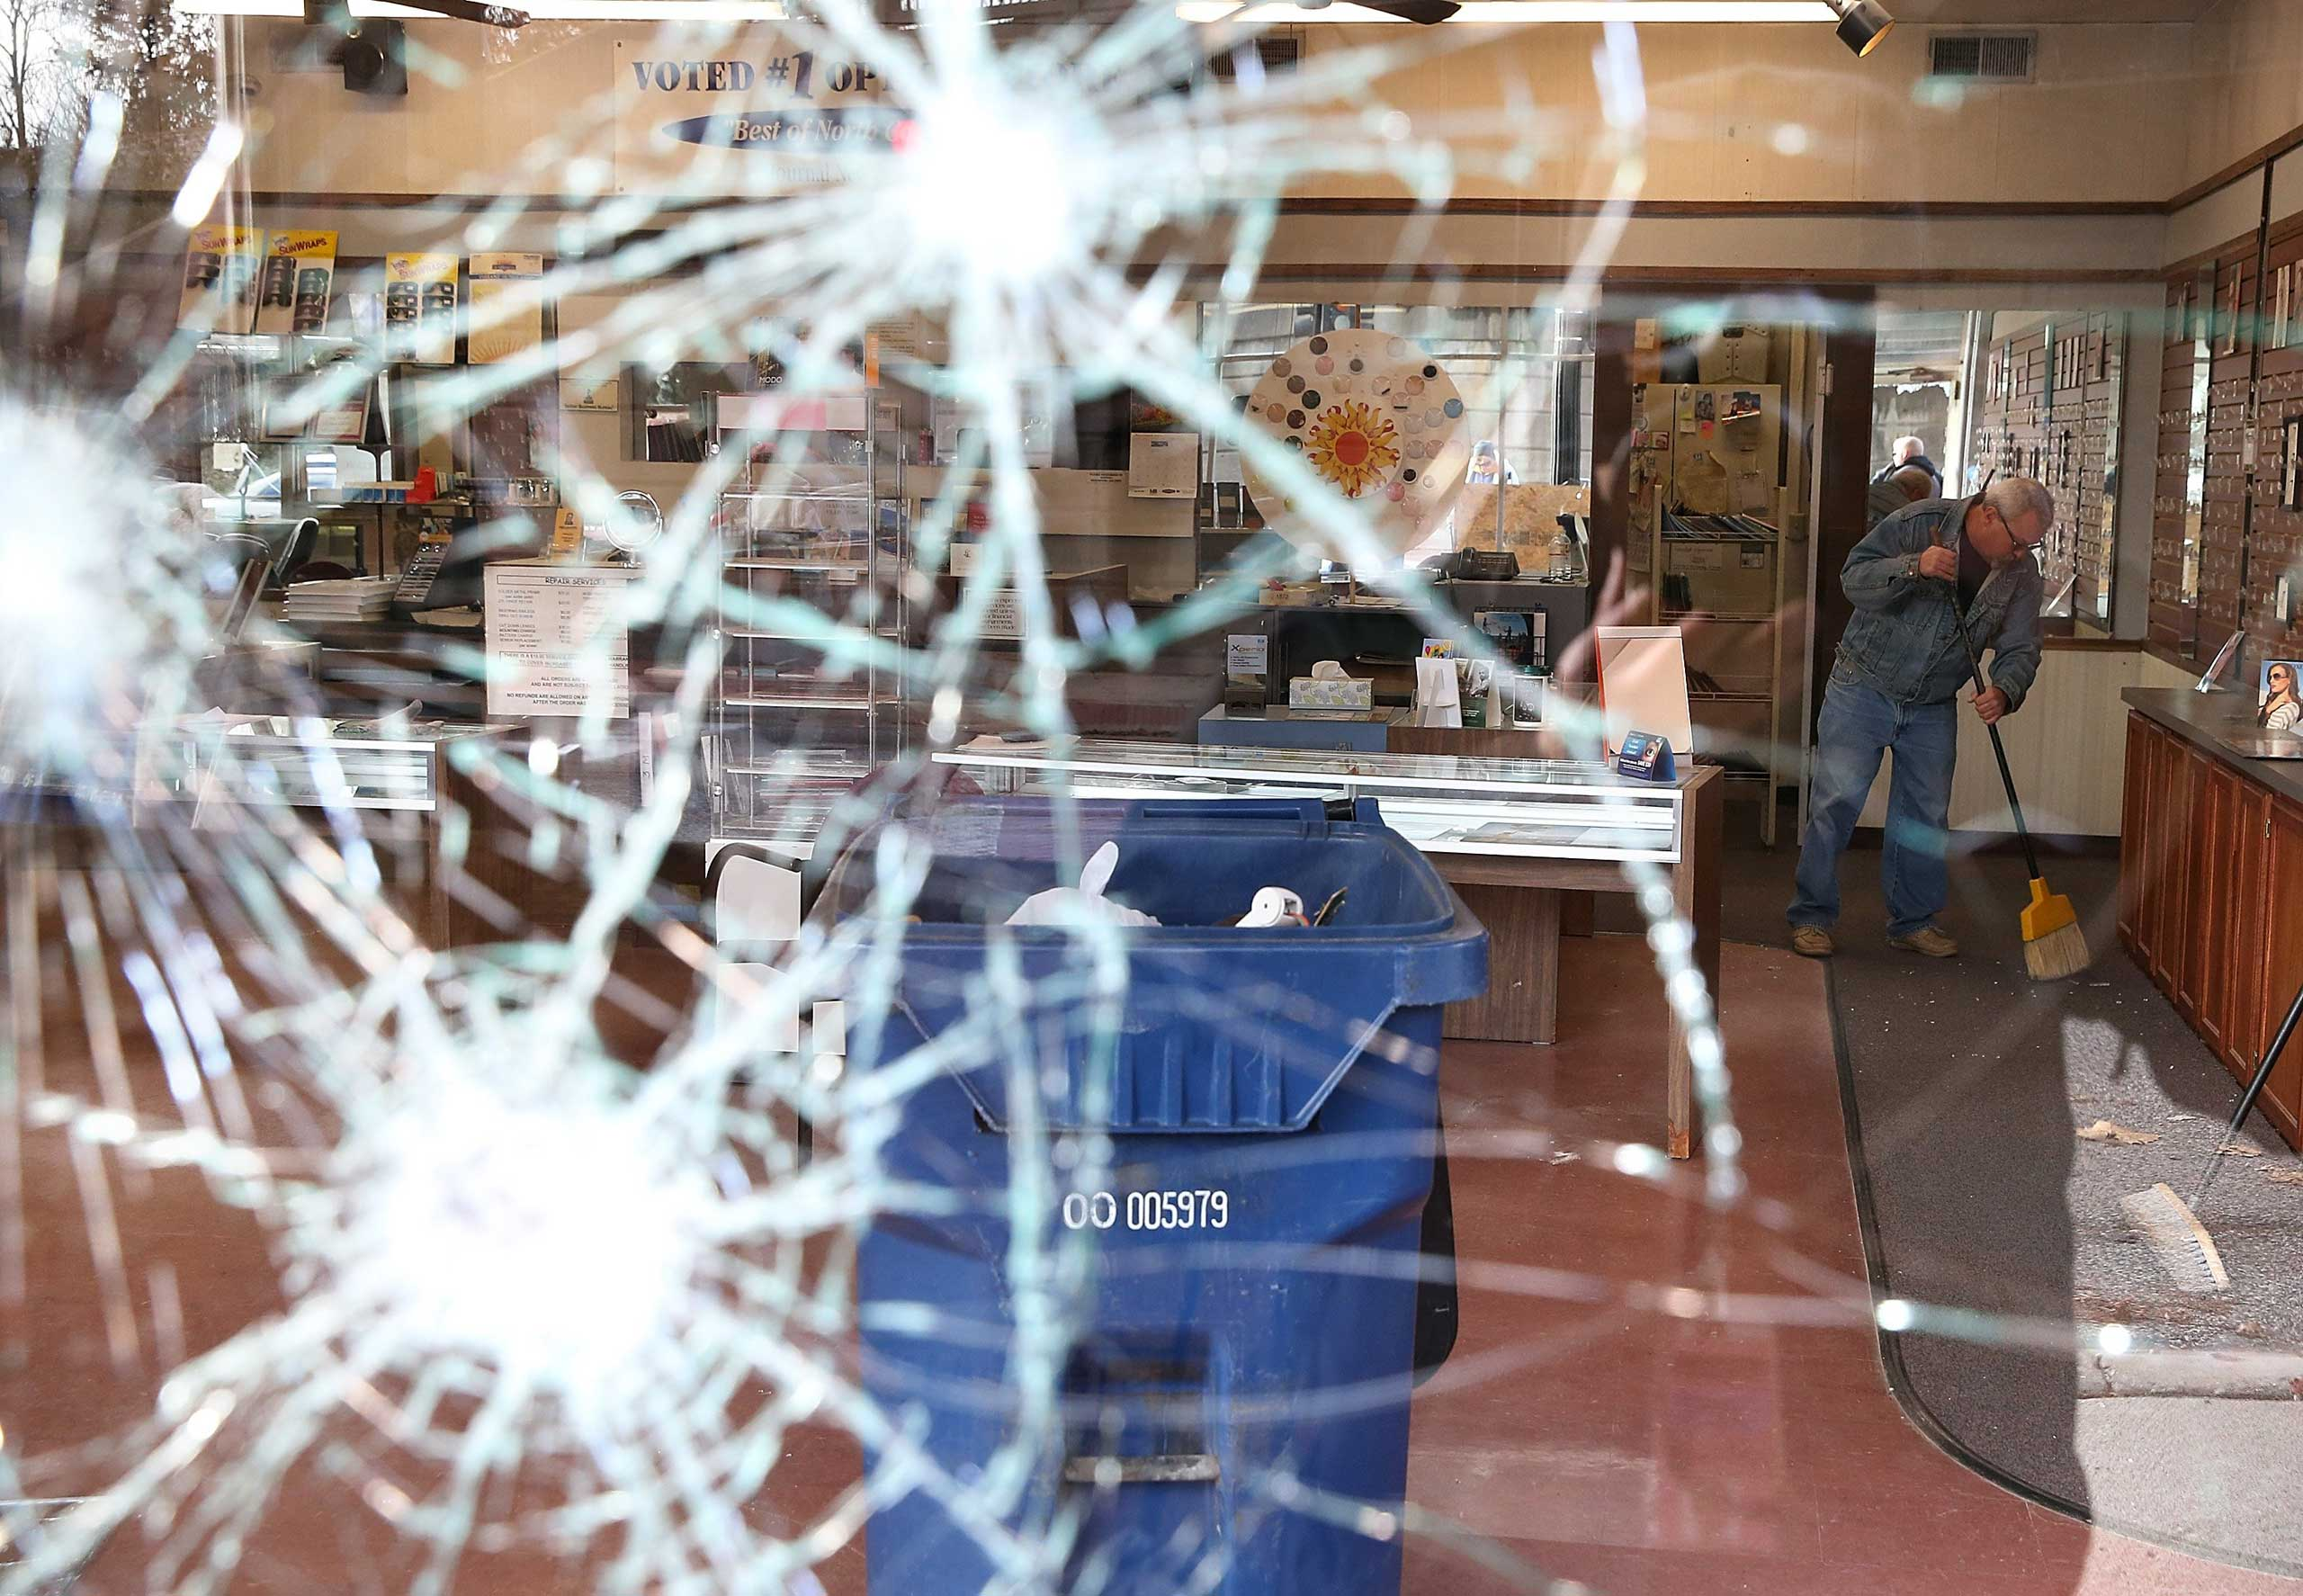 A worker cleans up glass at a business that was damaged during a demonstration in Ferguson, Mo. on Nov. 25, 2014.